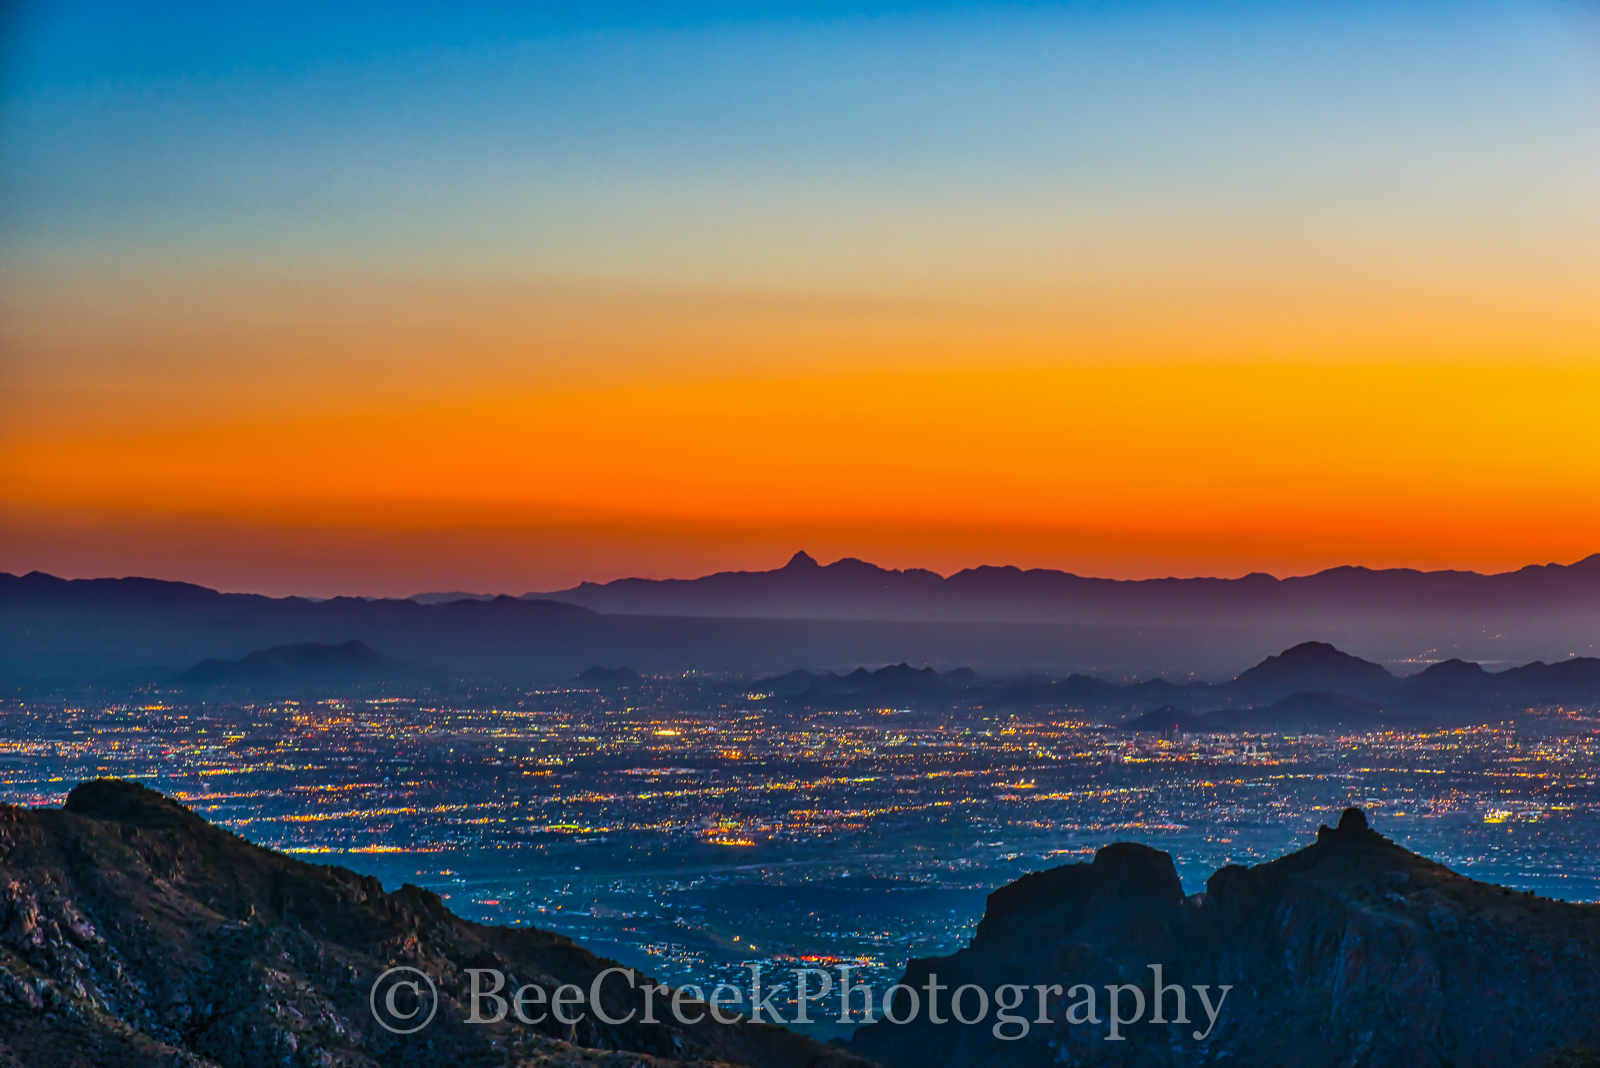 Sunset, Tucson, Santa Catalinas Mountains, Tucson, mountains, colorful skies, scenic vista, orange, City, City lights, Cityscape, Tucson, skyline of Tucson, City lights of Tucson from Mountains, image, photo